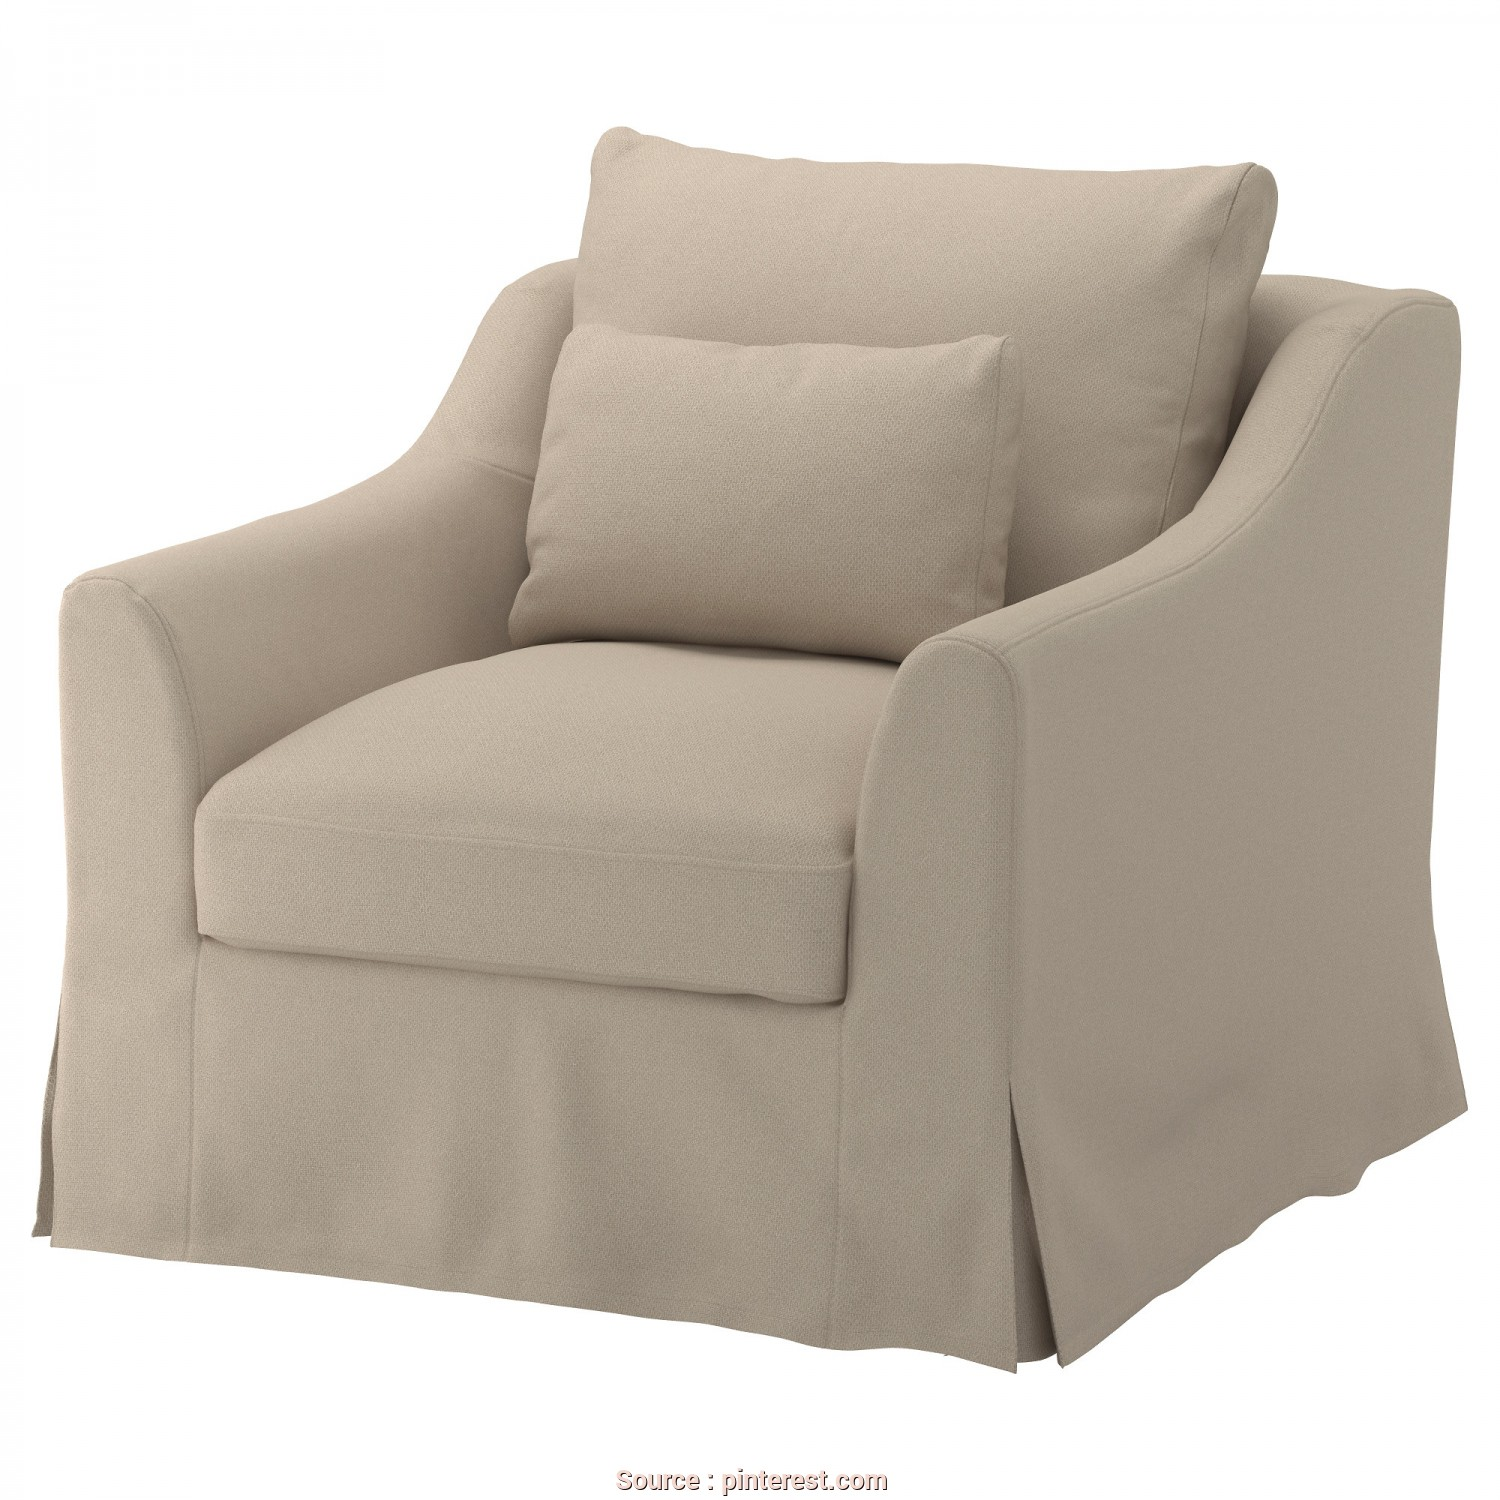 Ikea Divano Letto Farlov, Magnifico IKEA, FÄRLÖV, Chair, Flodafors Beige,, Yarn-Dyed Fabric With Natural Hints Of Flax That Gives, Cover A Texture That Both Looks, Feels Crisp